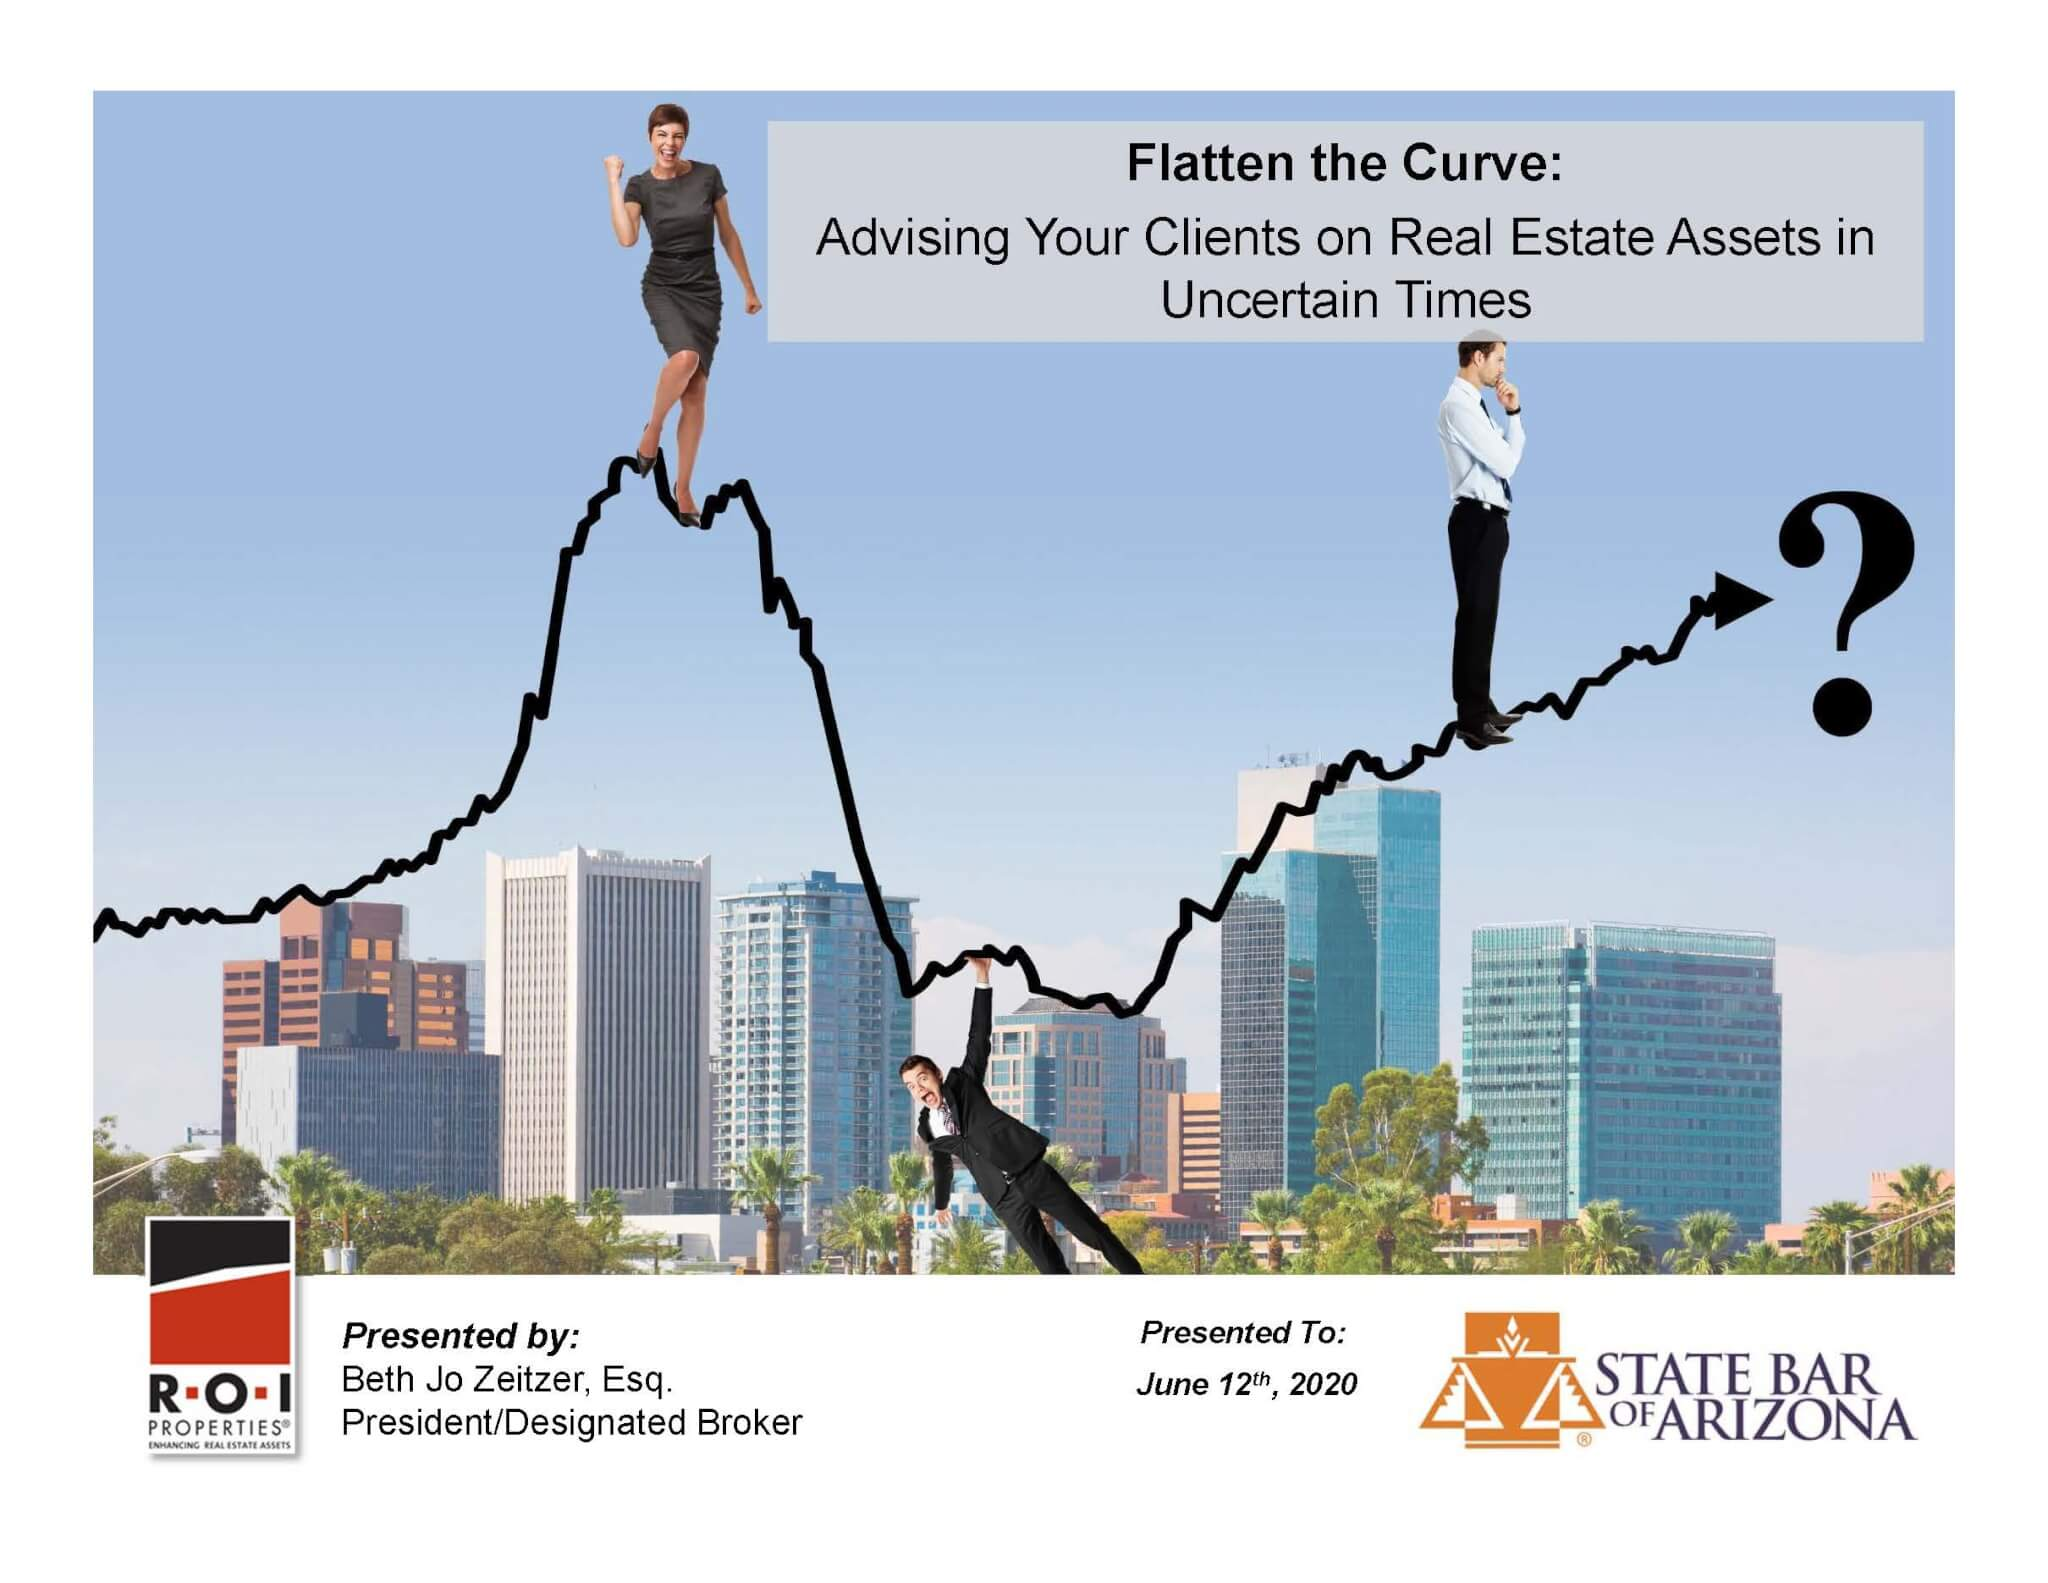 Flatten the Curve: Advising Your Clients on Real Estate Assets in Uncertain Times